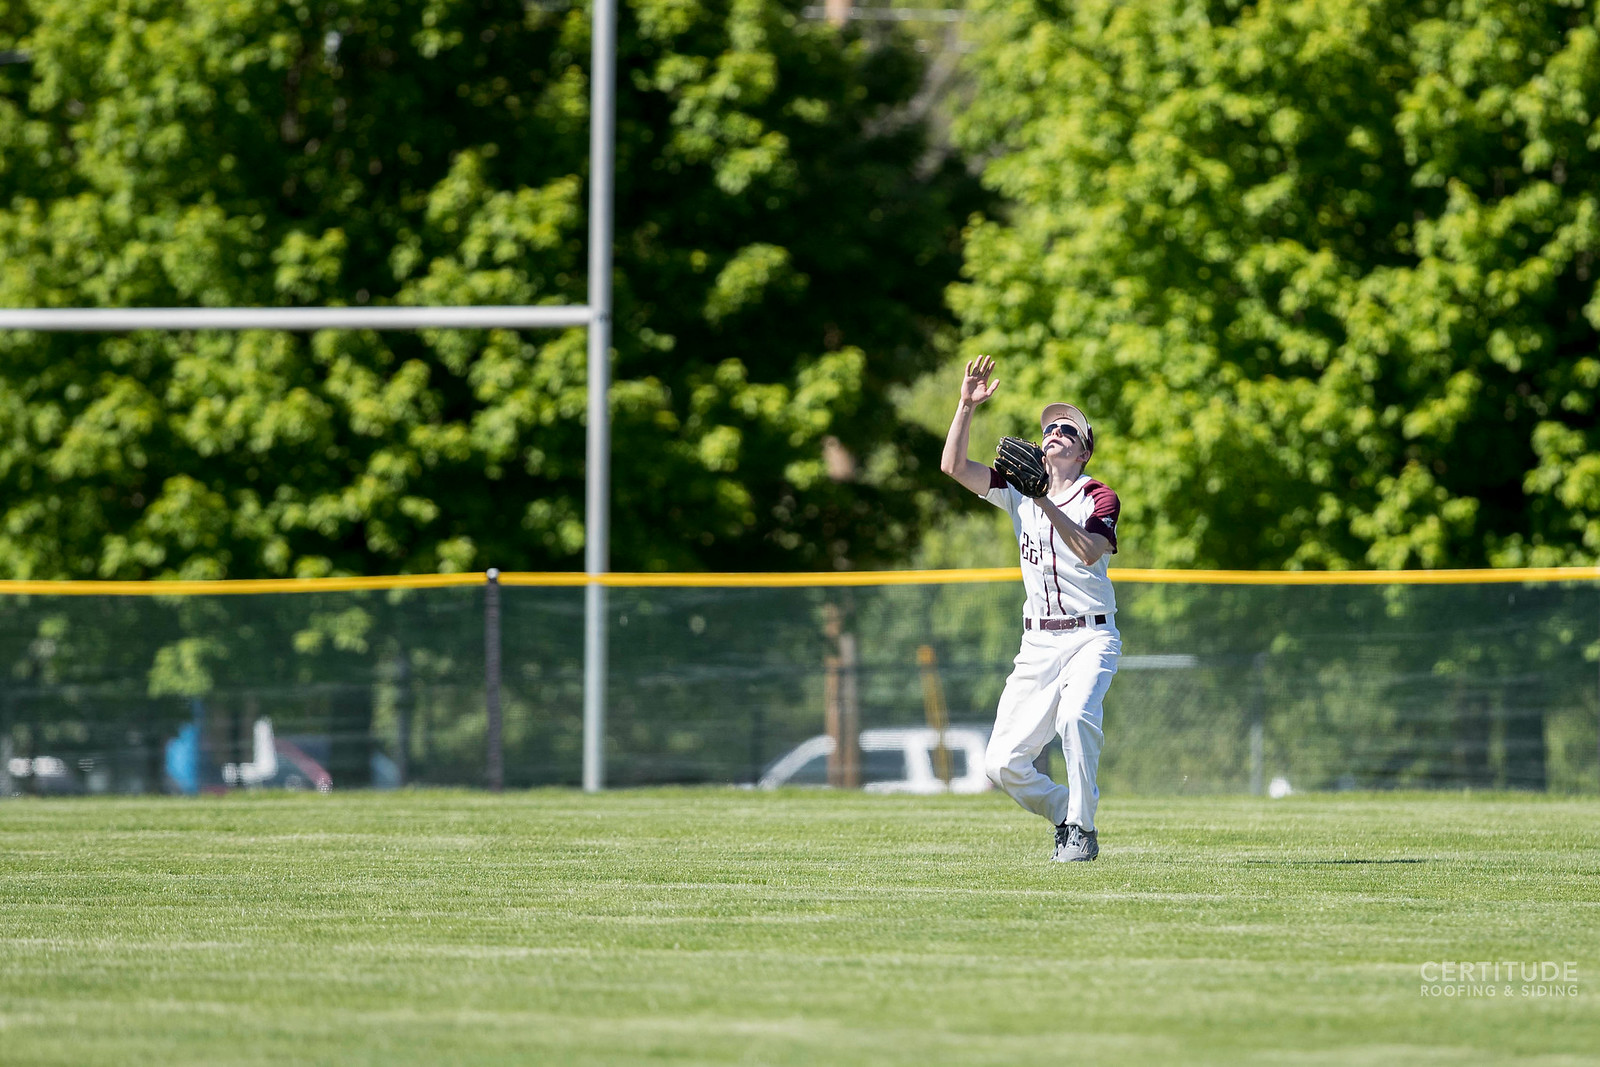 Lower_Merion_BASEBALL_vs_Conestoga-121